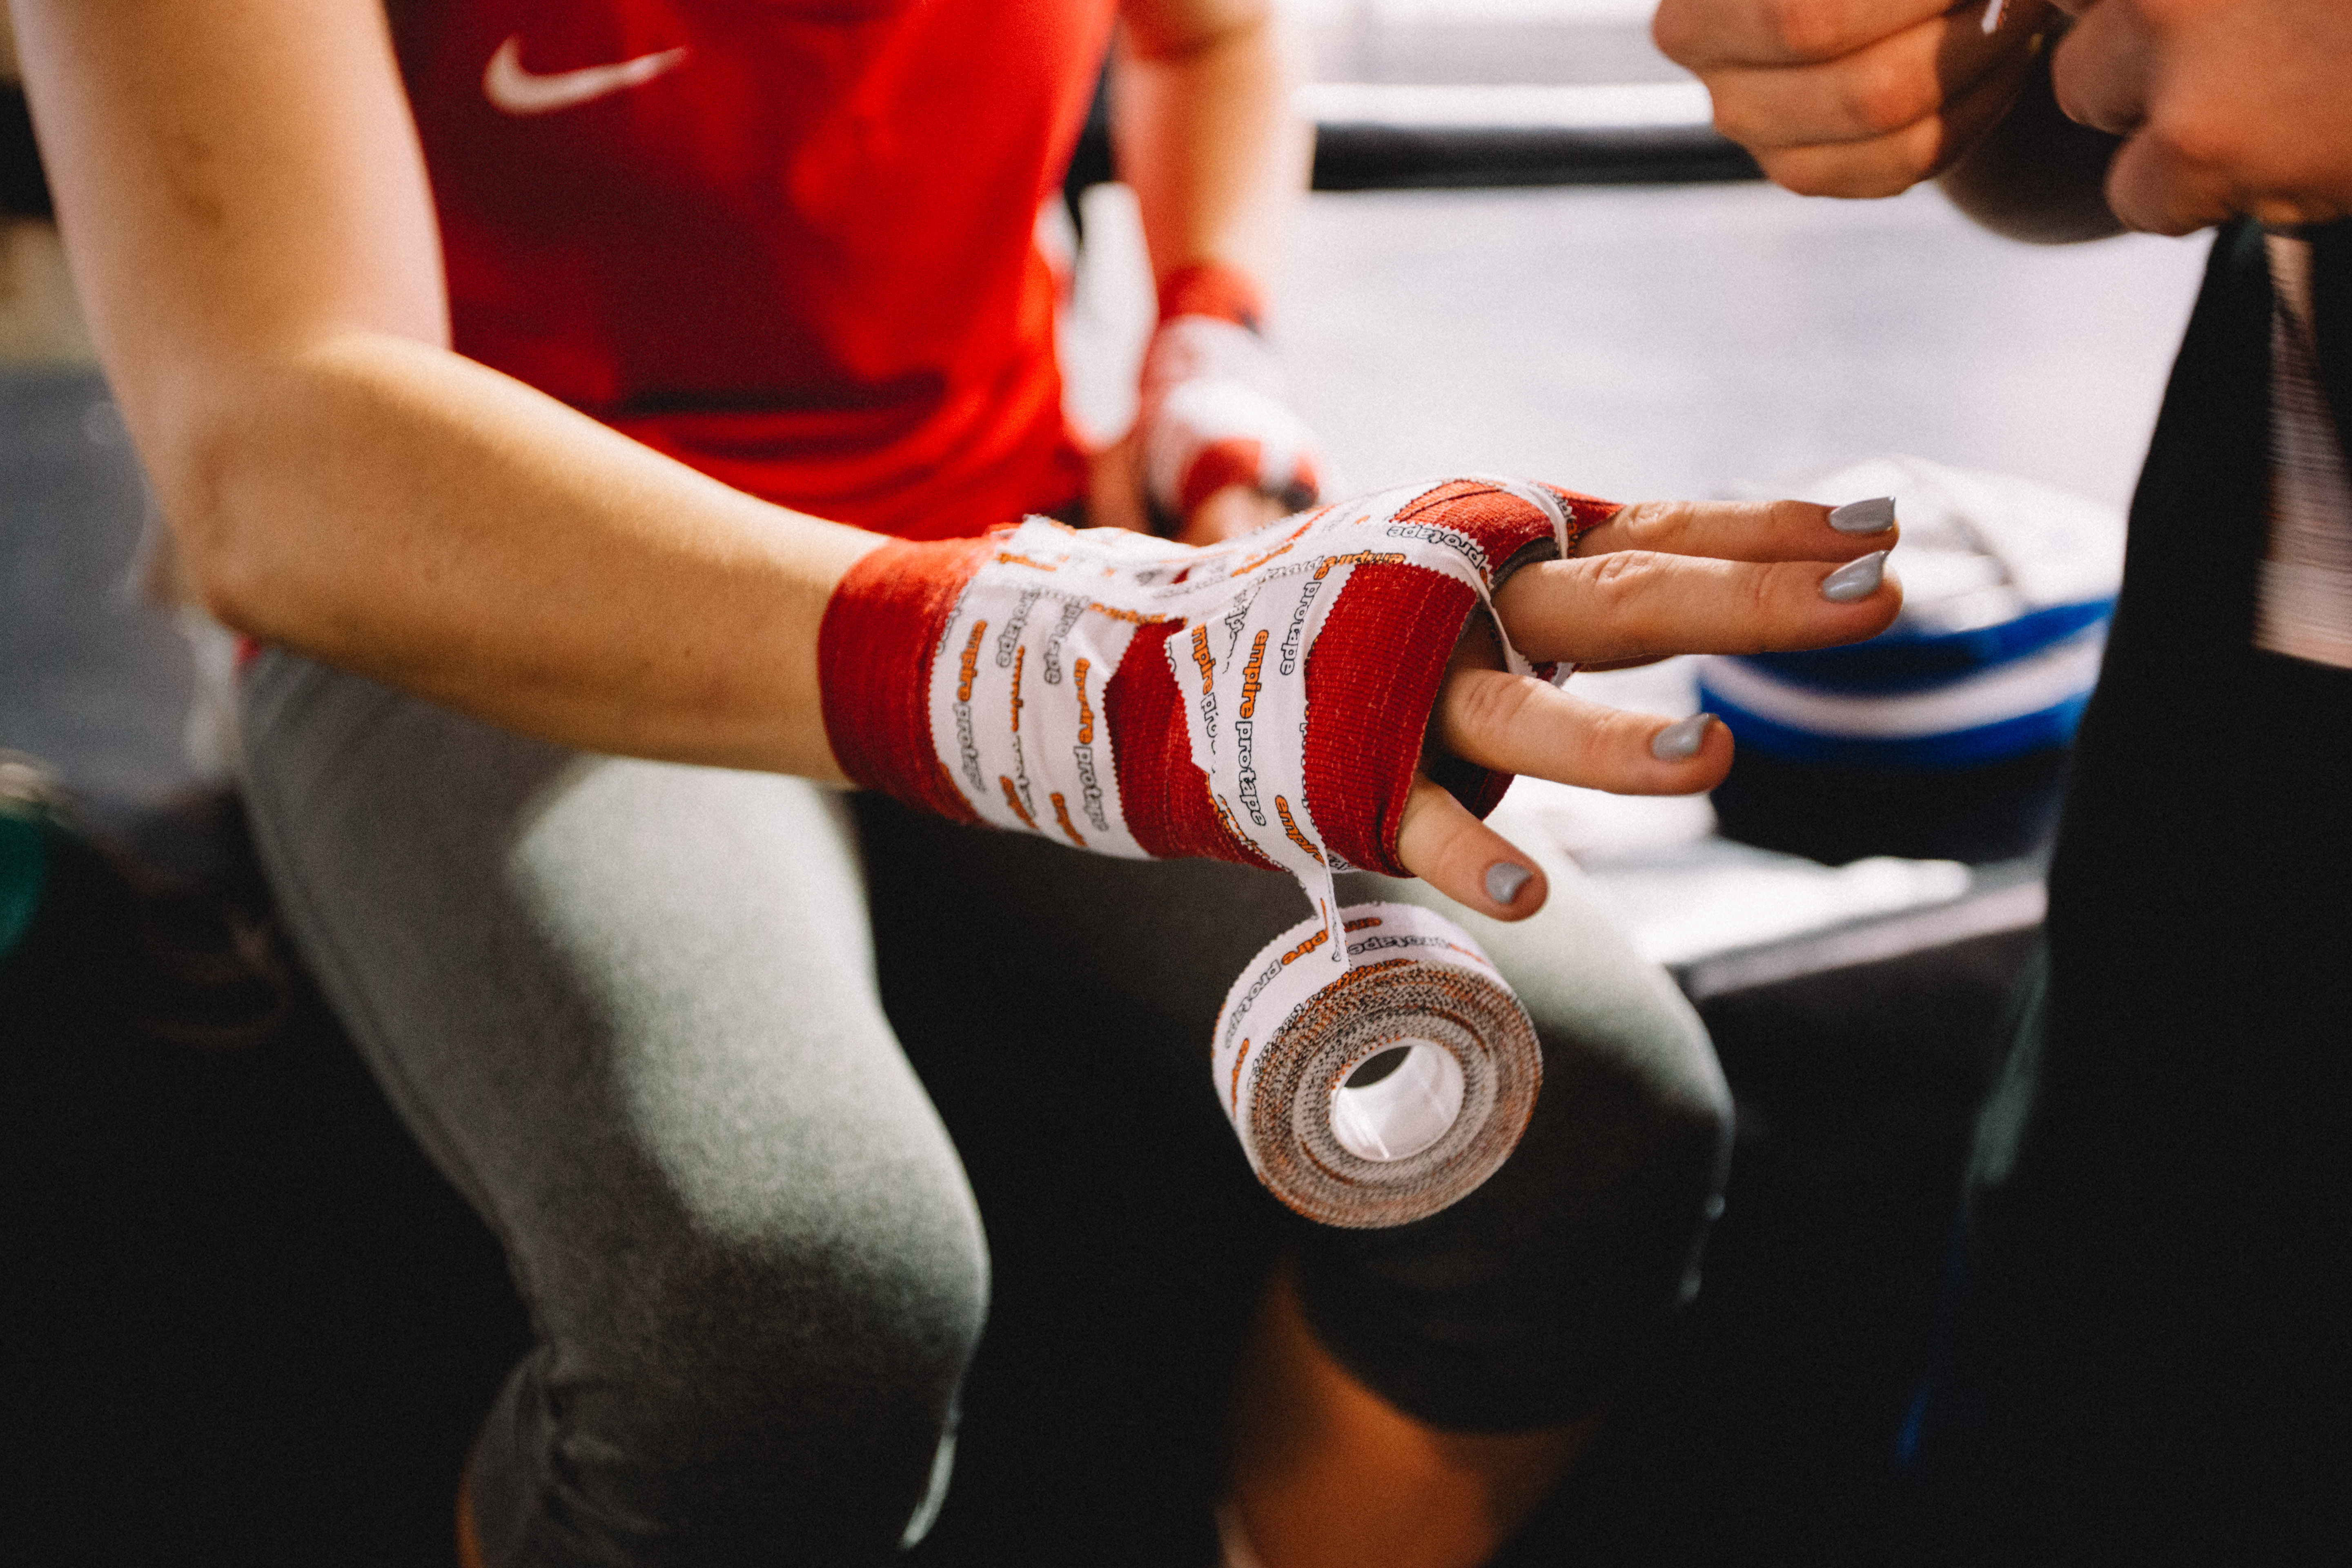 Female boxer getting ready to fight. Love the detail of her finger nails whilst getting wrapped up to punch! Lookout!